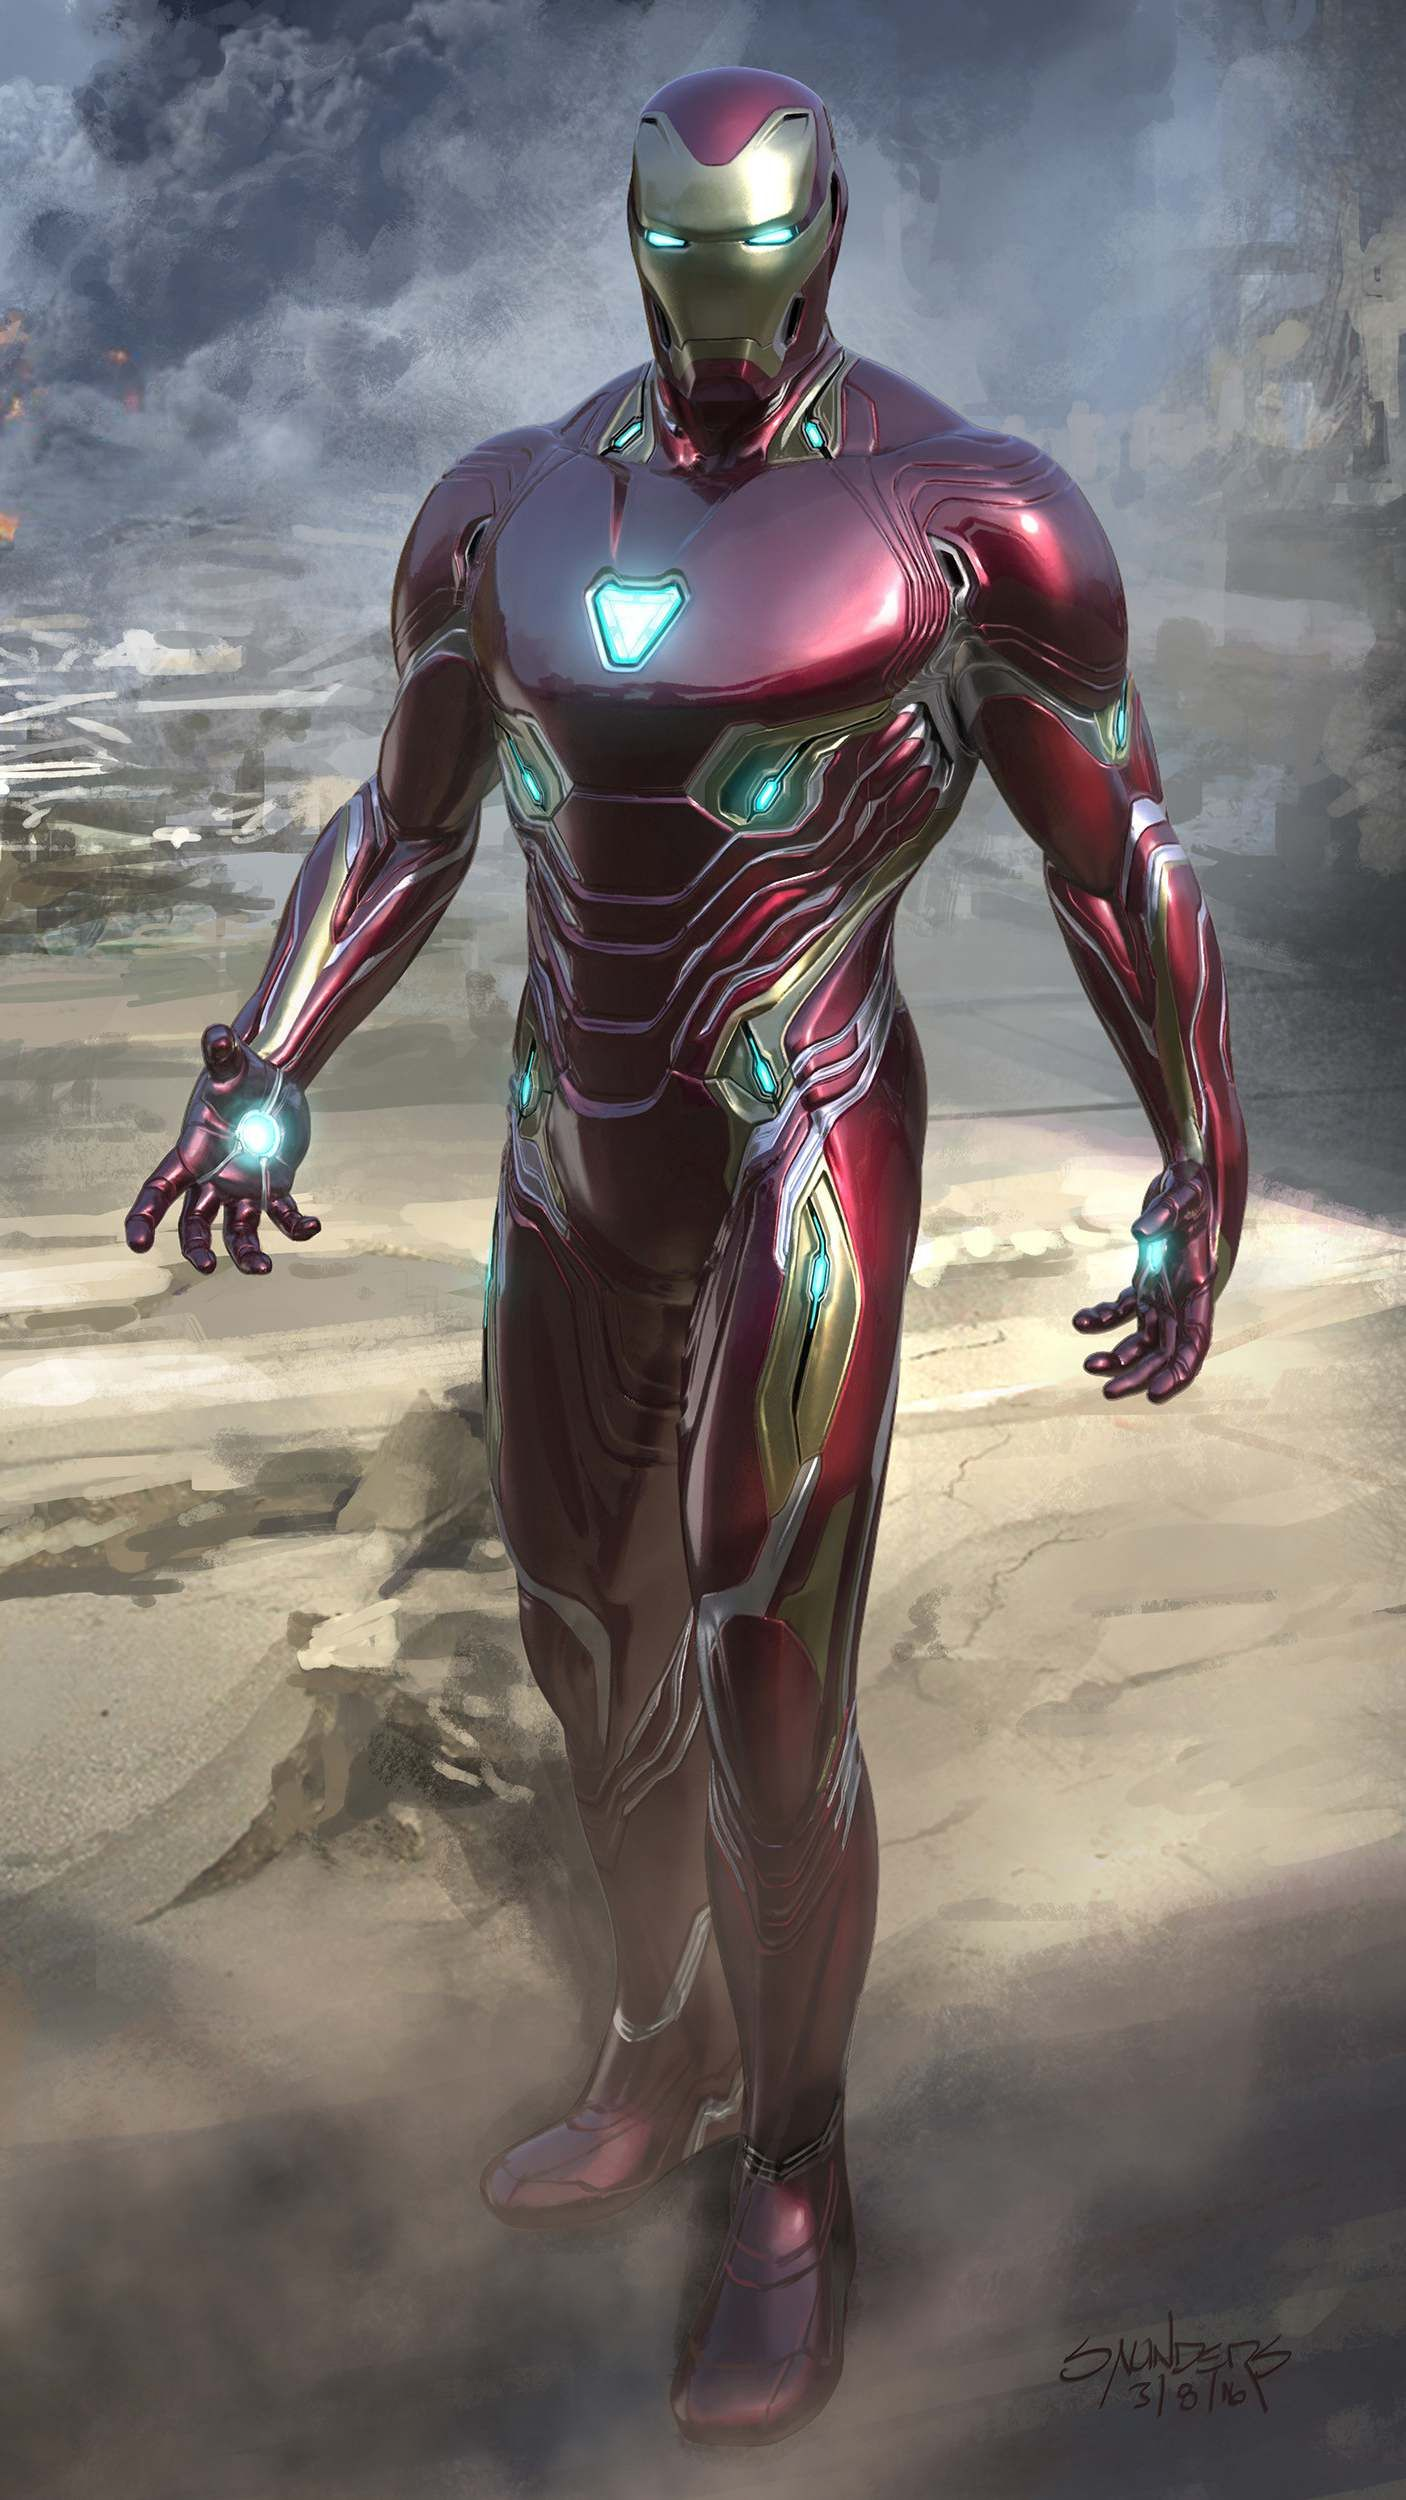 Iron Man Nano Technology Armor Wallpaper Iron Man Avengers Iron